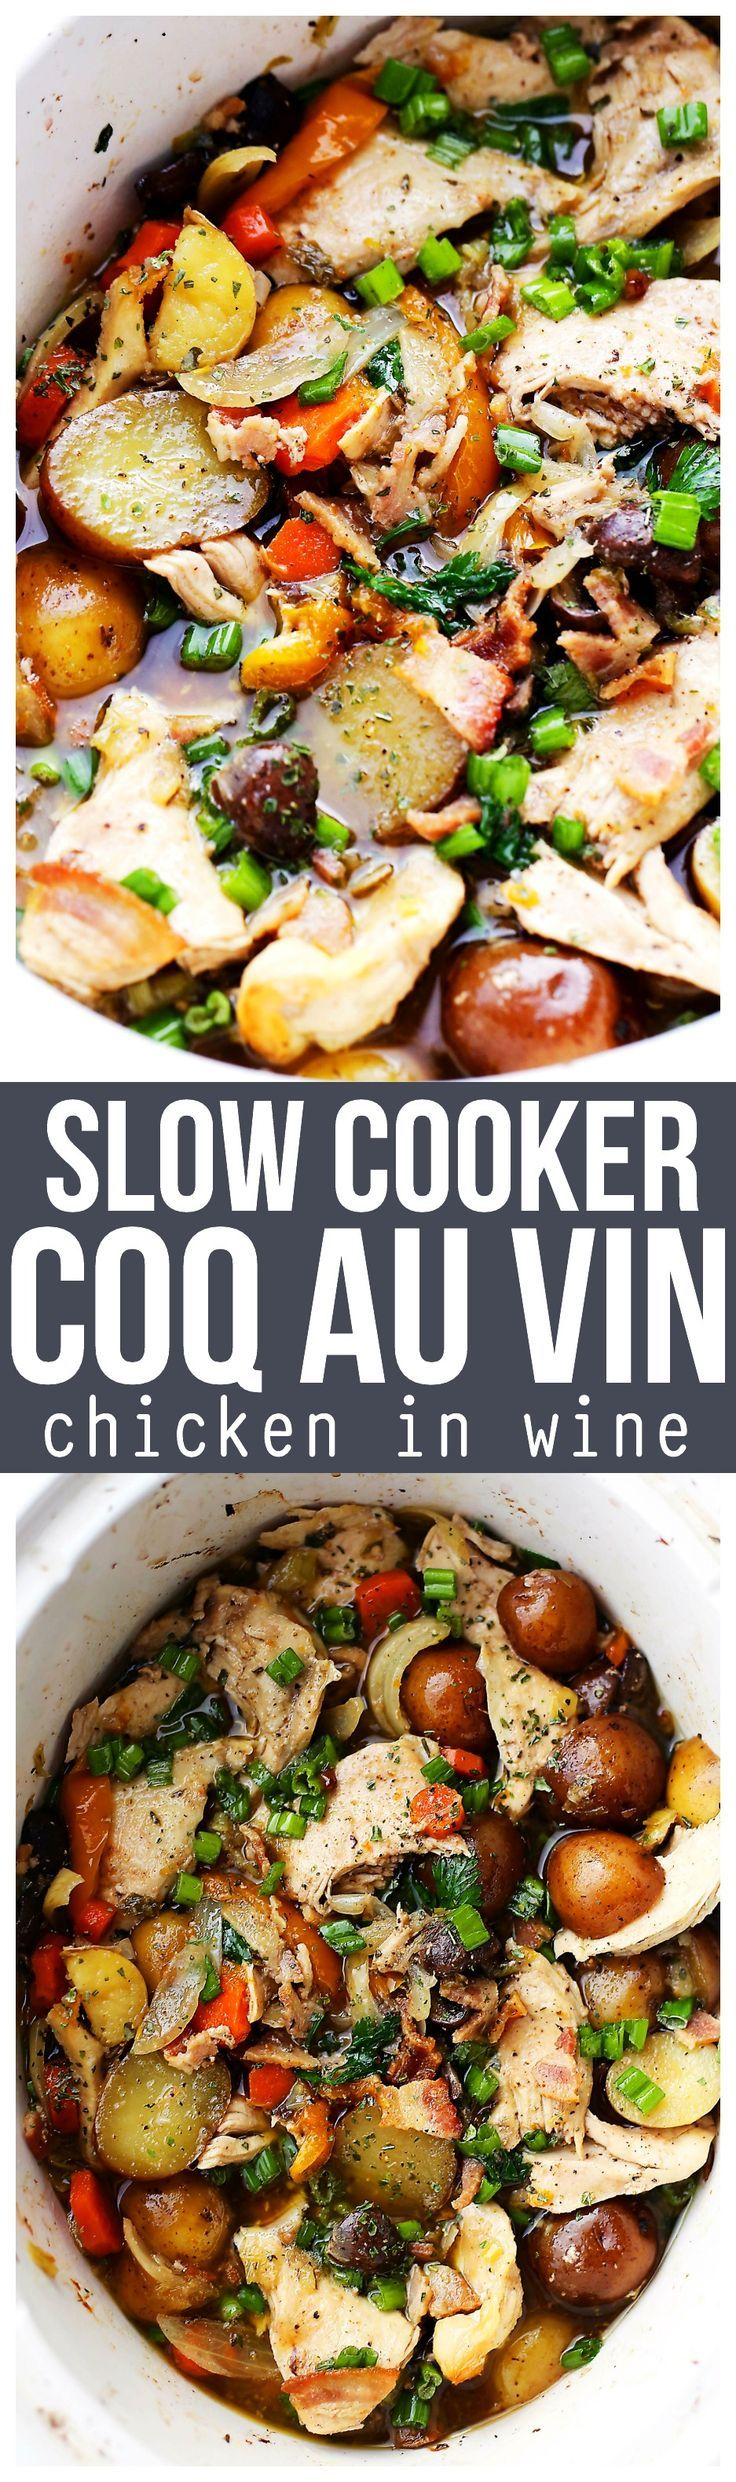 Slow Cooker Coq au Vin A classic French winter stew with